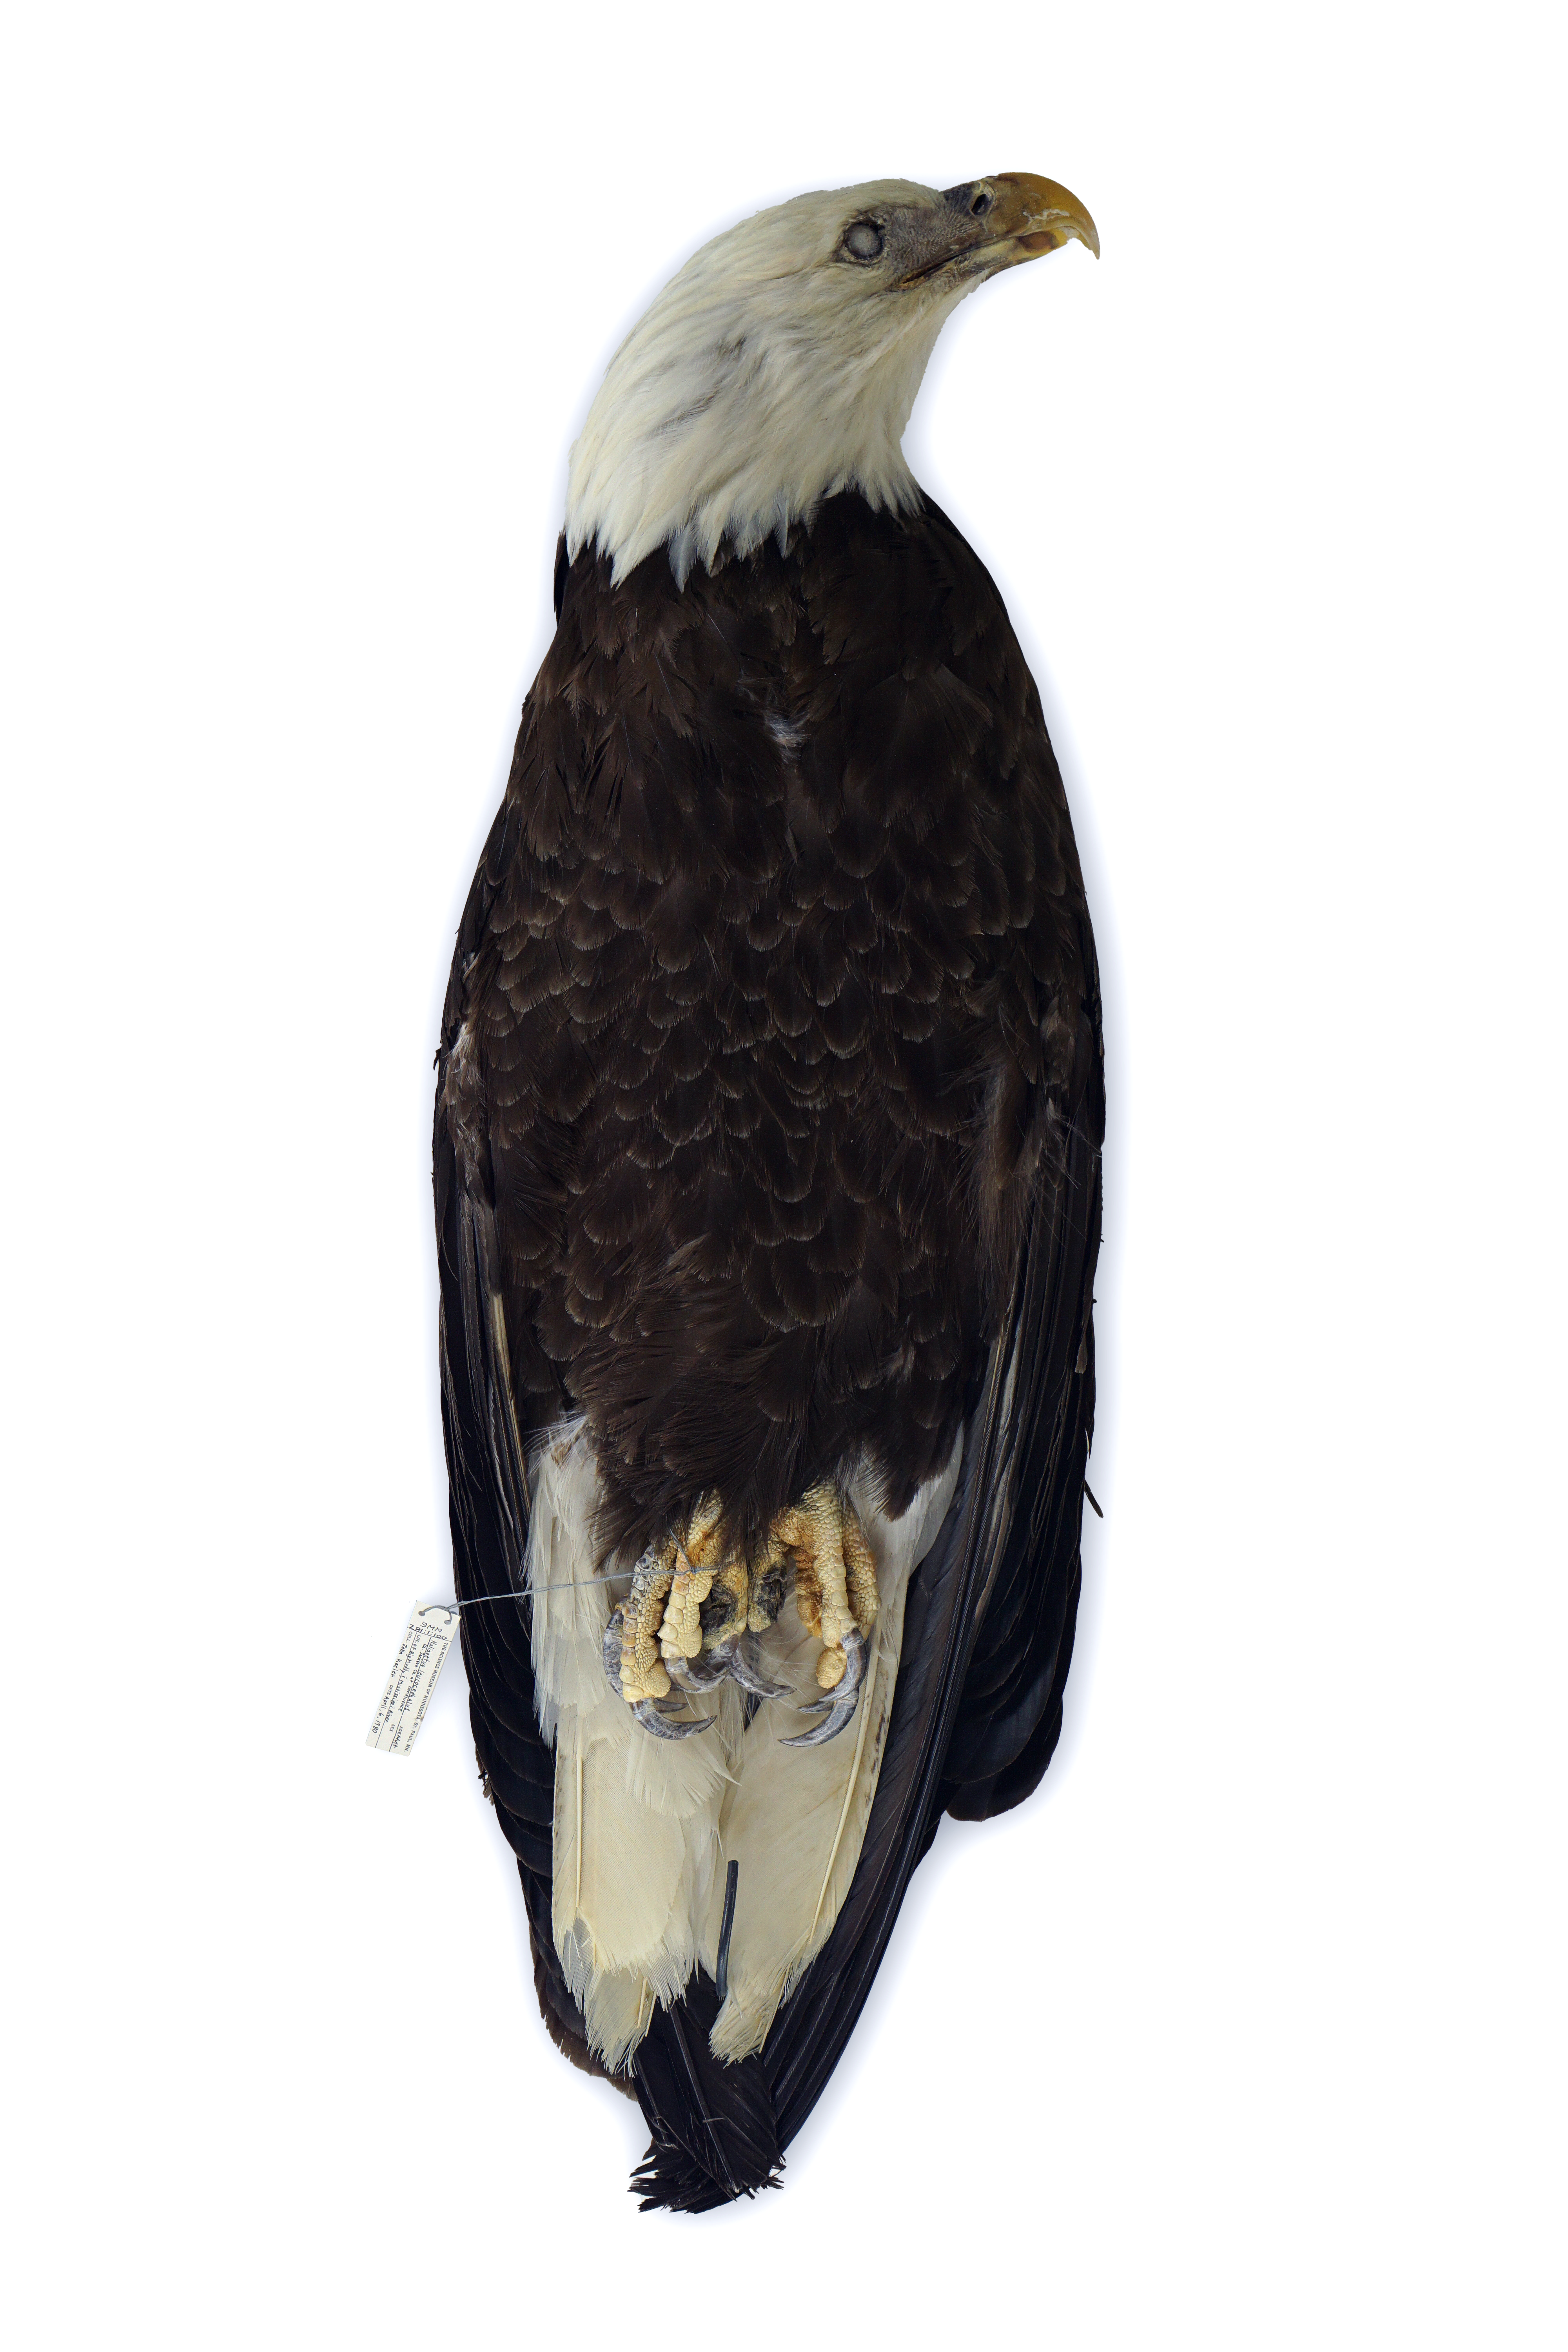 Study skin bald eagle on a white background